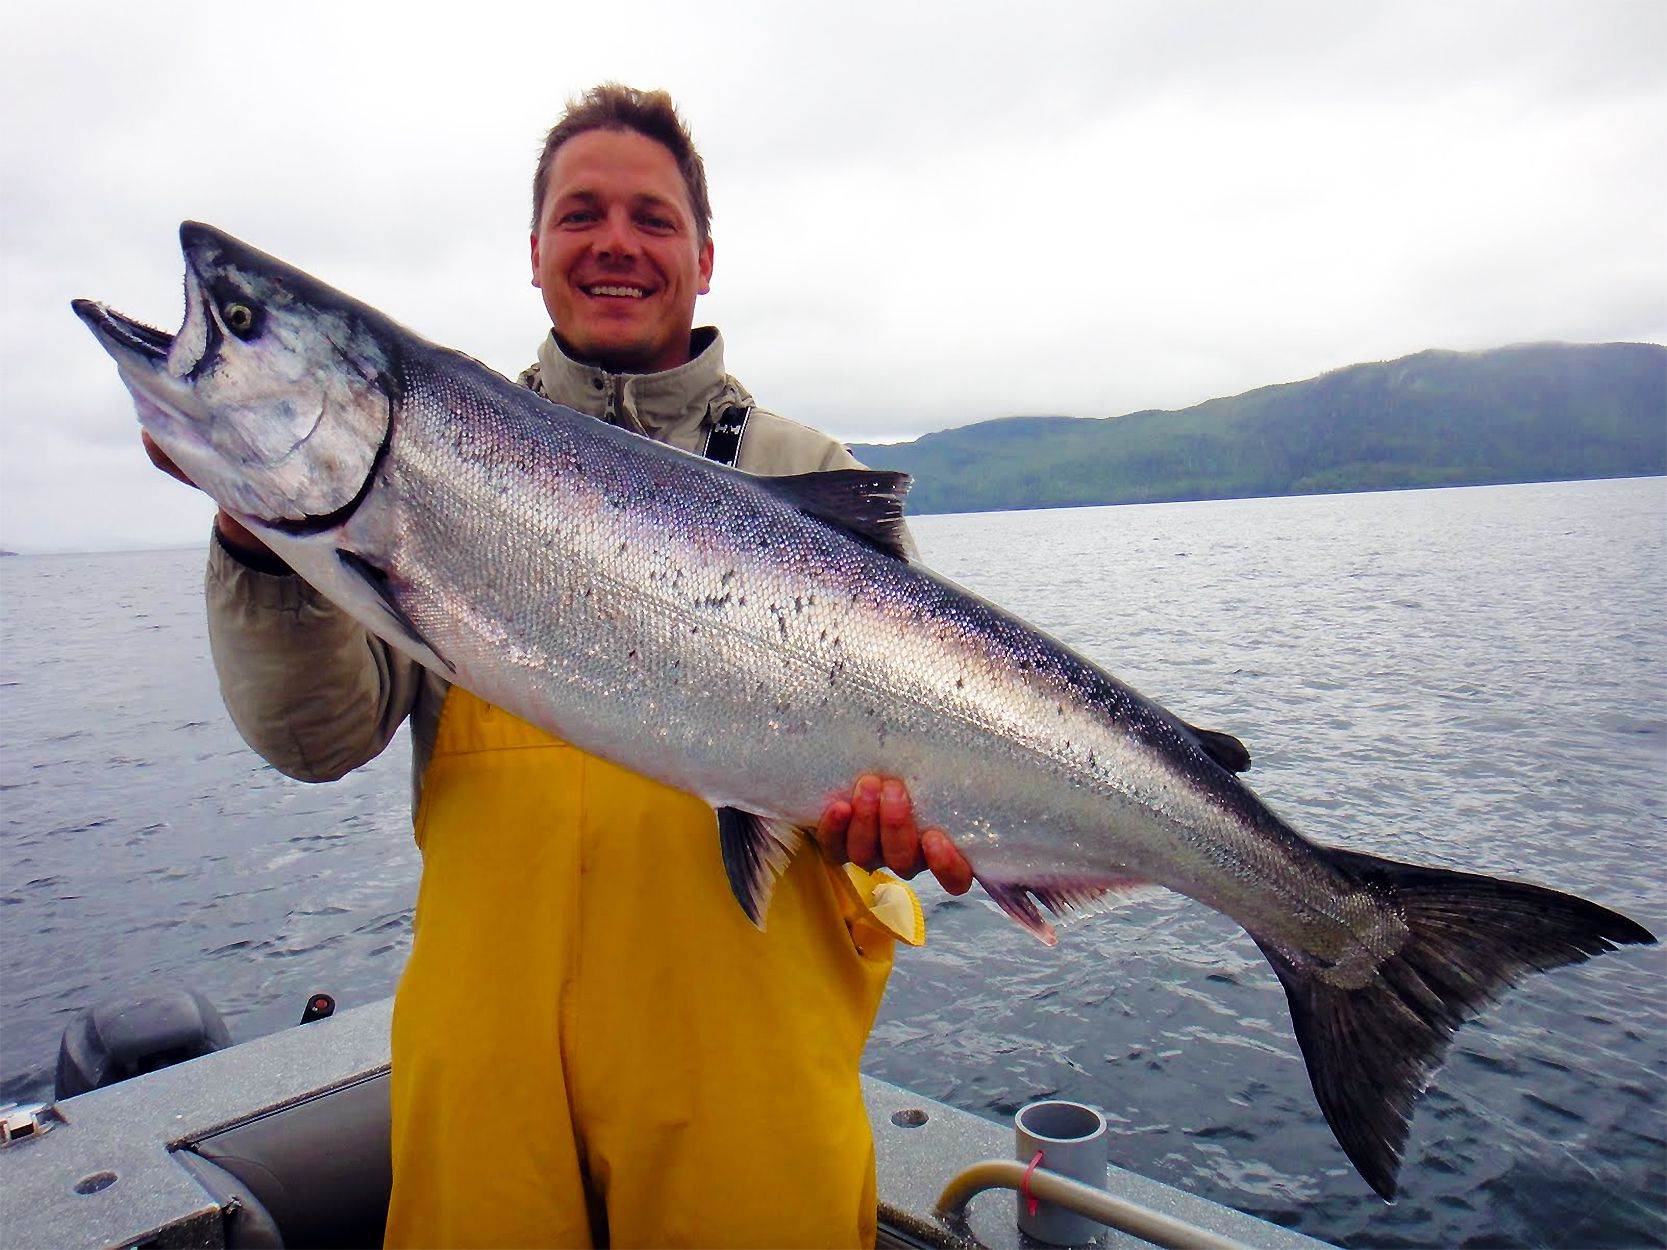 How to quickly rig a ballyhoo bait fish for Salmon fishing alaska